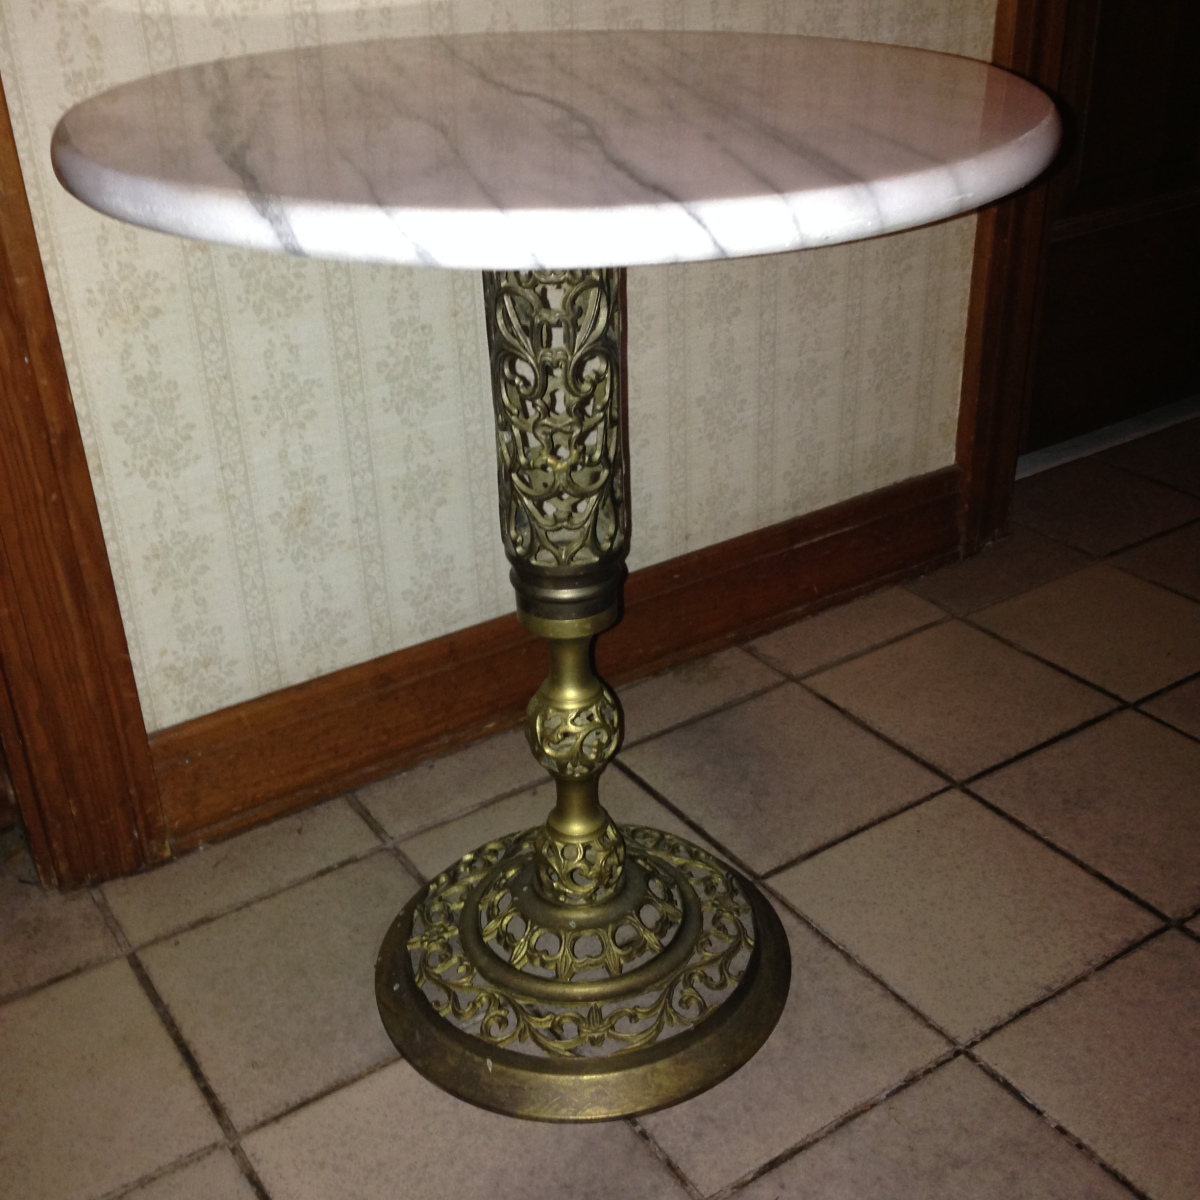 sold vintage round marble top table with ornate brass hallway accent bistro battery operated bedside lights hampton bay patio furniture cushions small decorative lamps yellow home